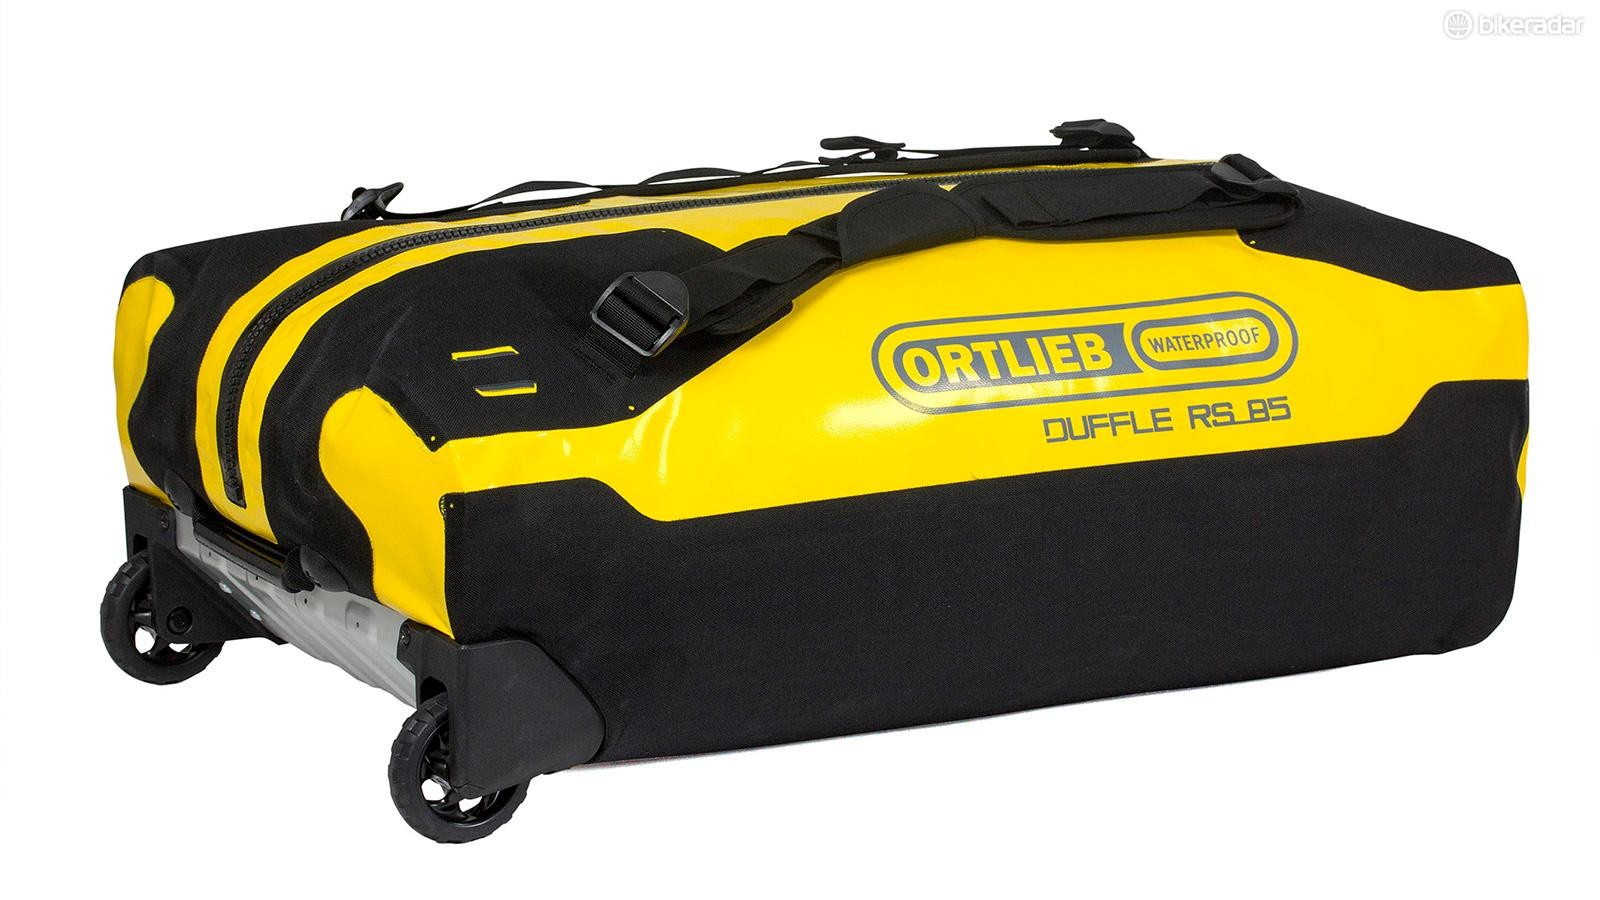 Ortlieb's Duffle RS 85 is solid and made to withstand the elements